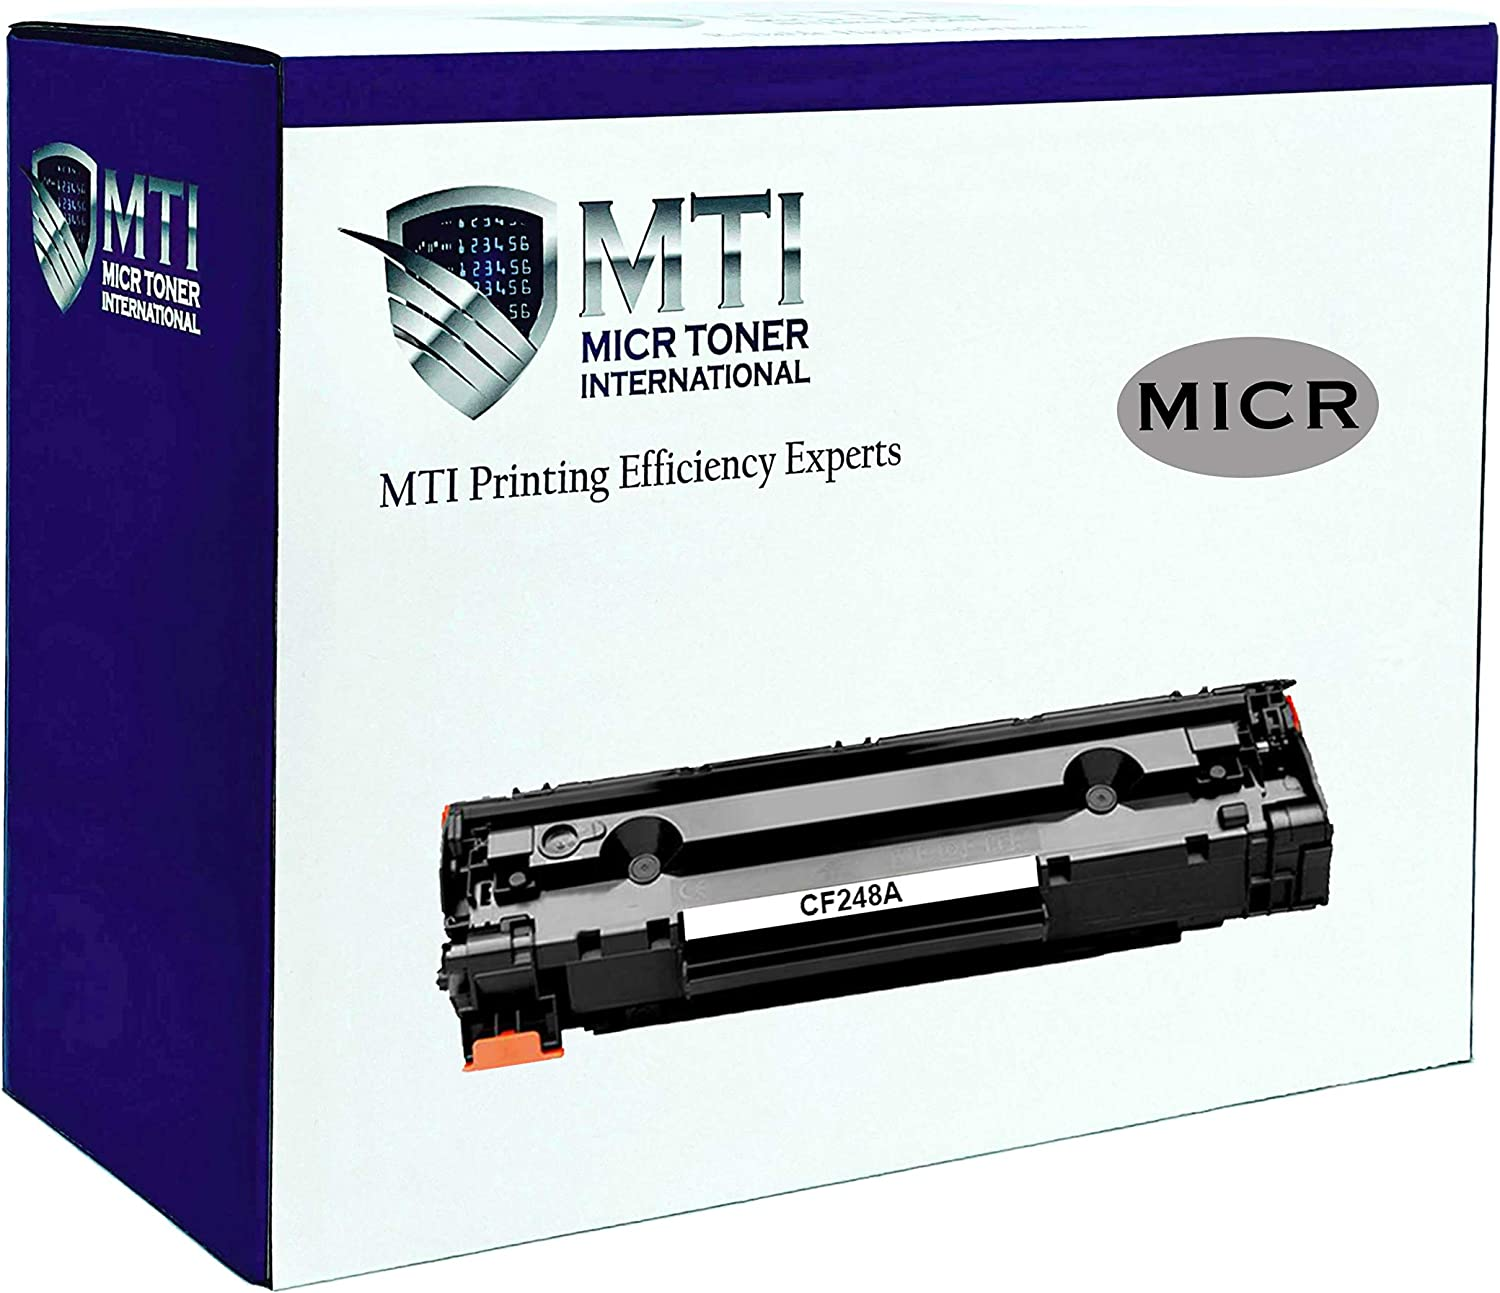 MICR Toner International Compatible Magnetic Ink Cartridge Replacement for HP CF248A 48A Laserjet Pro M15 M16 M28 M29